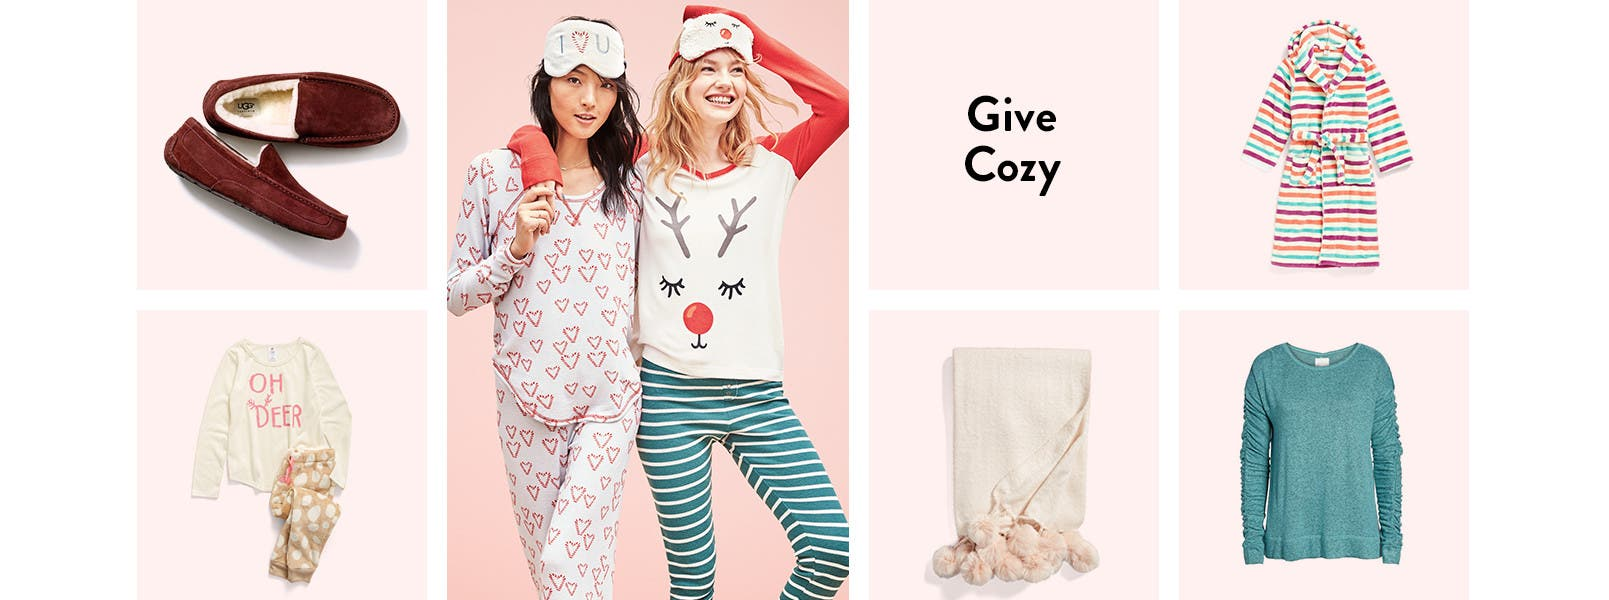 They love it, we've got it: gifts for everyone on your list.